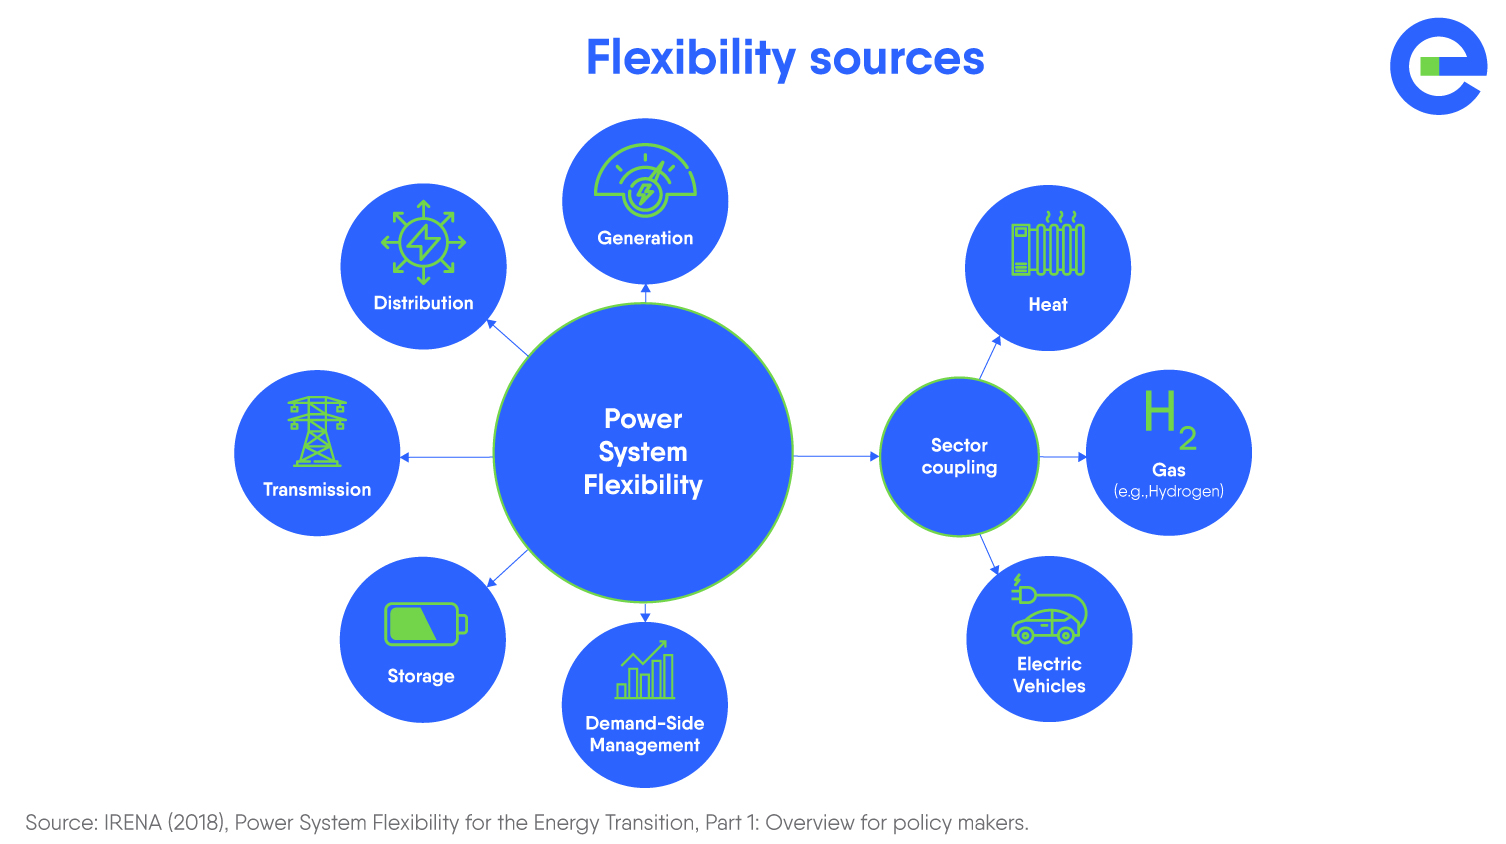 Storage Report 2020 - Flexibility sources